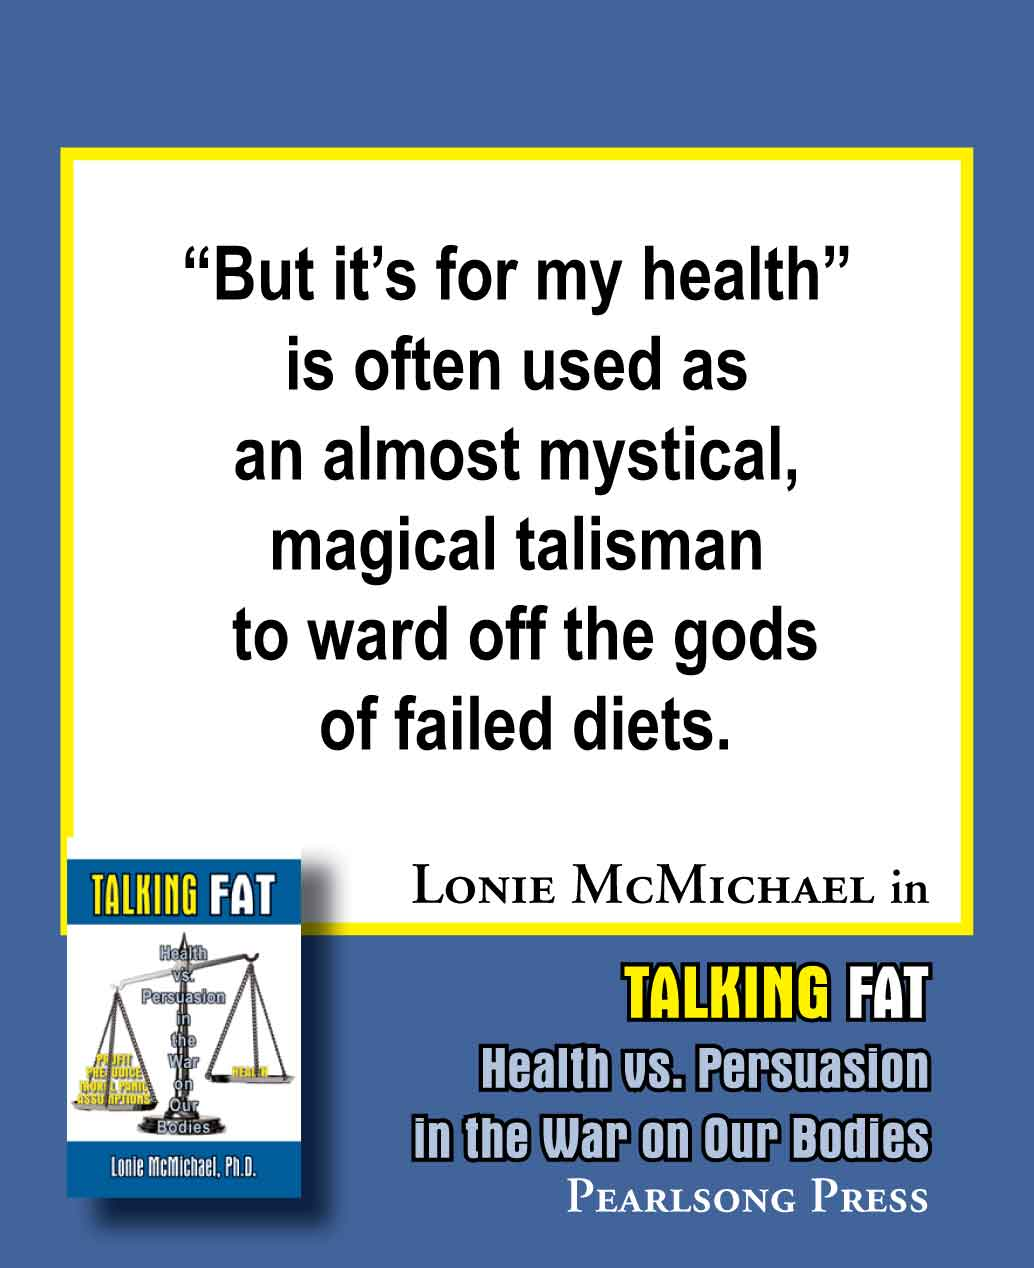 Talking Fat: Health vs. Persuasion in the War on Our Bodies by Lonie McMichael, Ph.D.